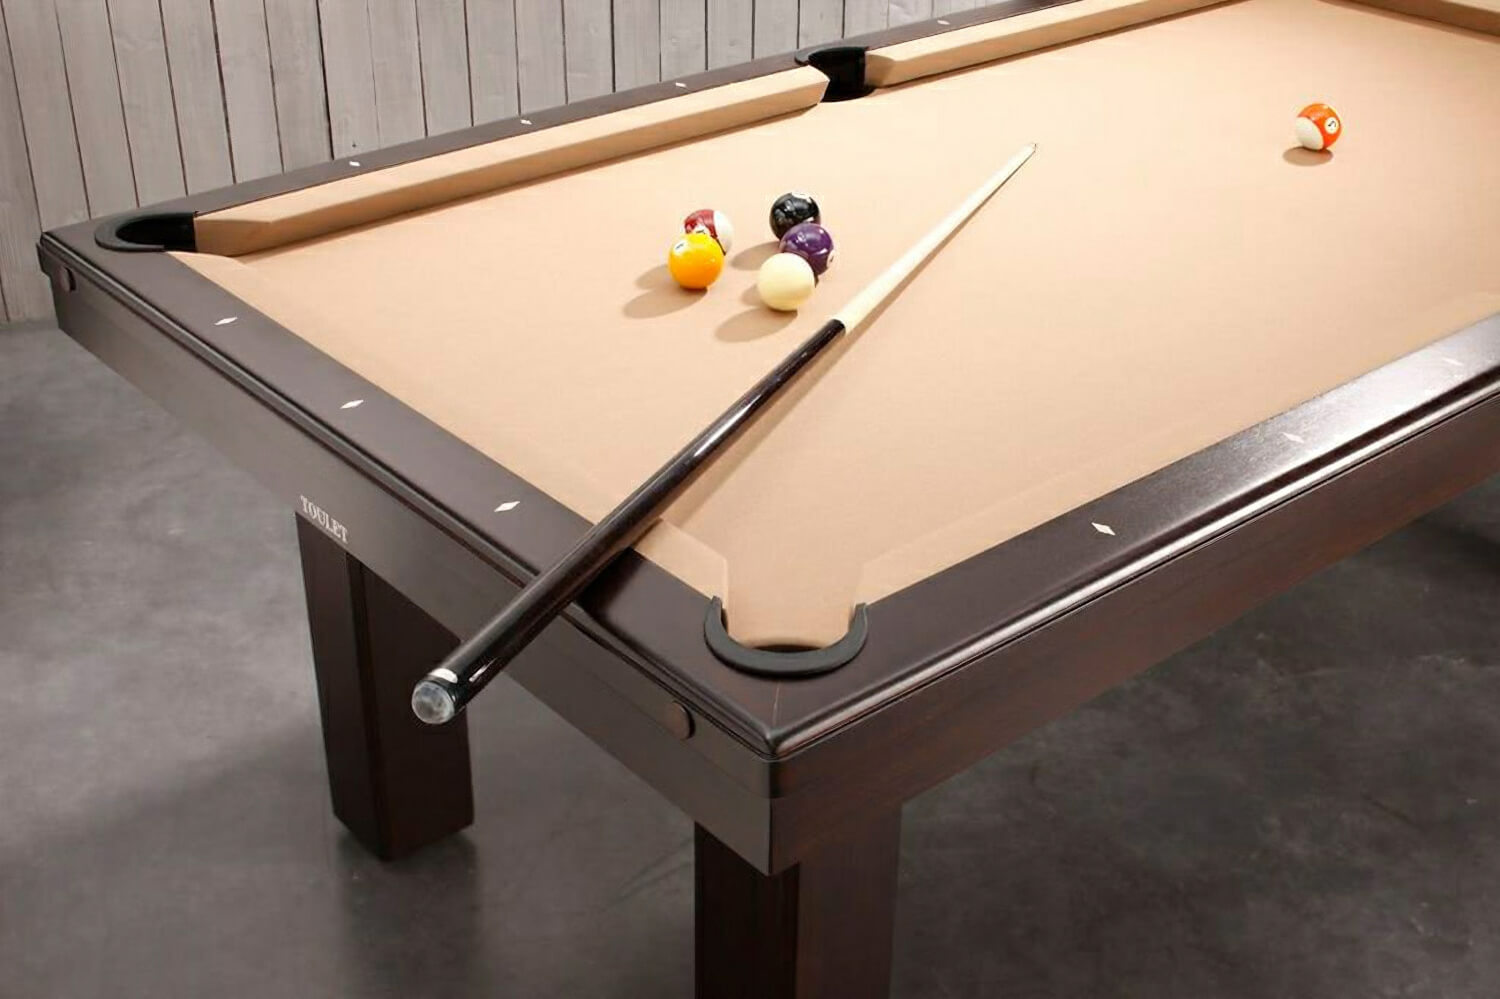 billard toulet broadway snooker table 9 ft 10 ft liberty games. Black Bedroom Furniture Sets. Home Design Ideas